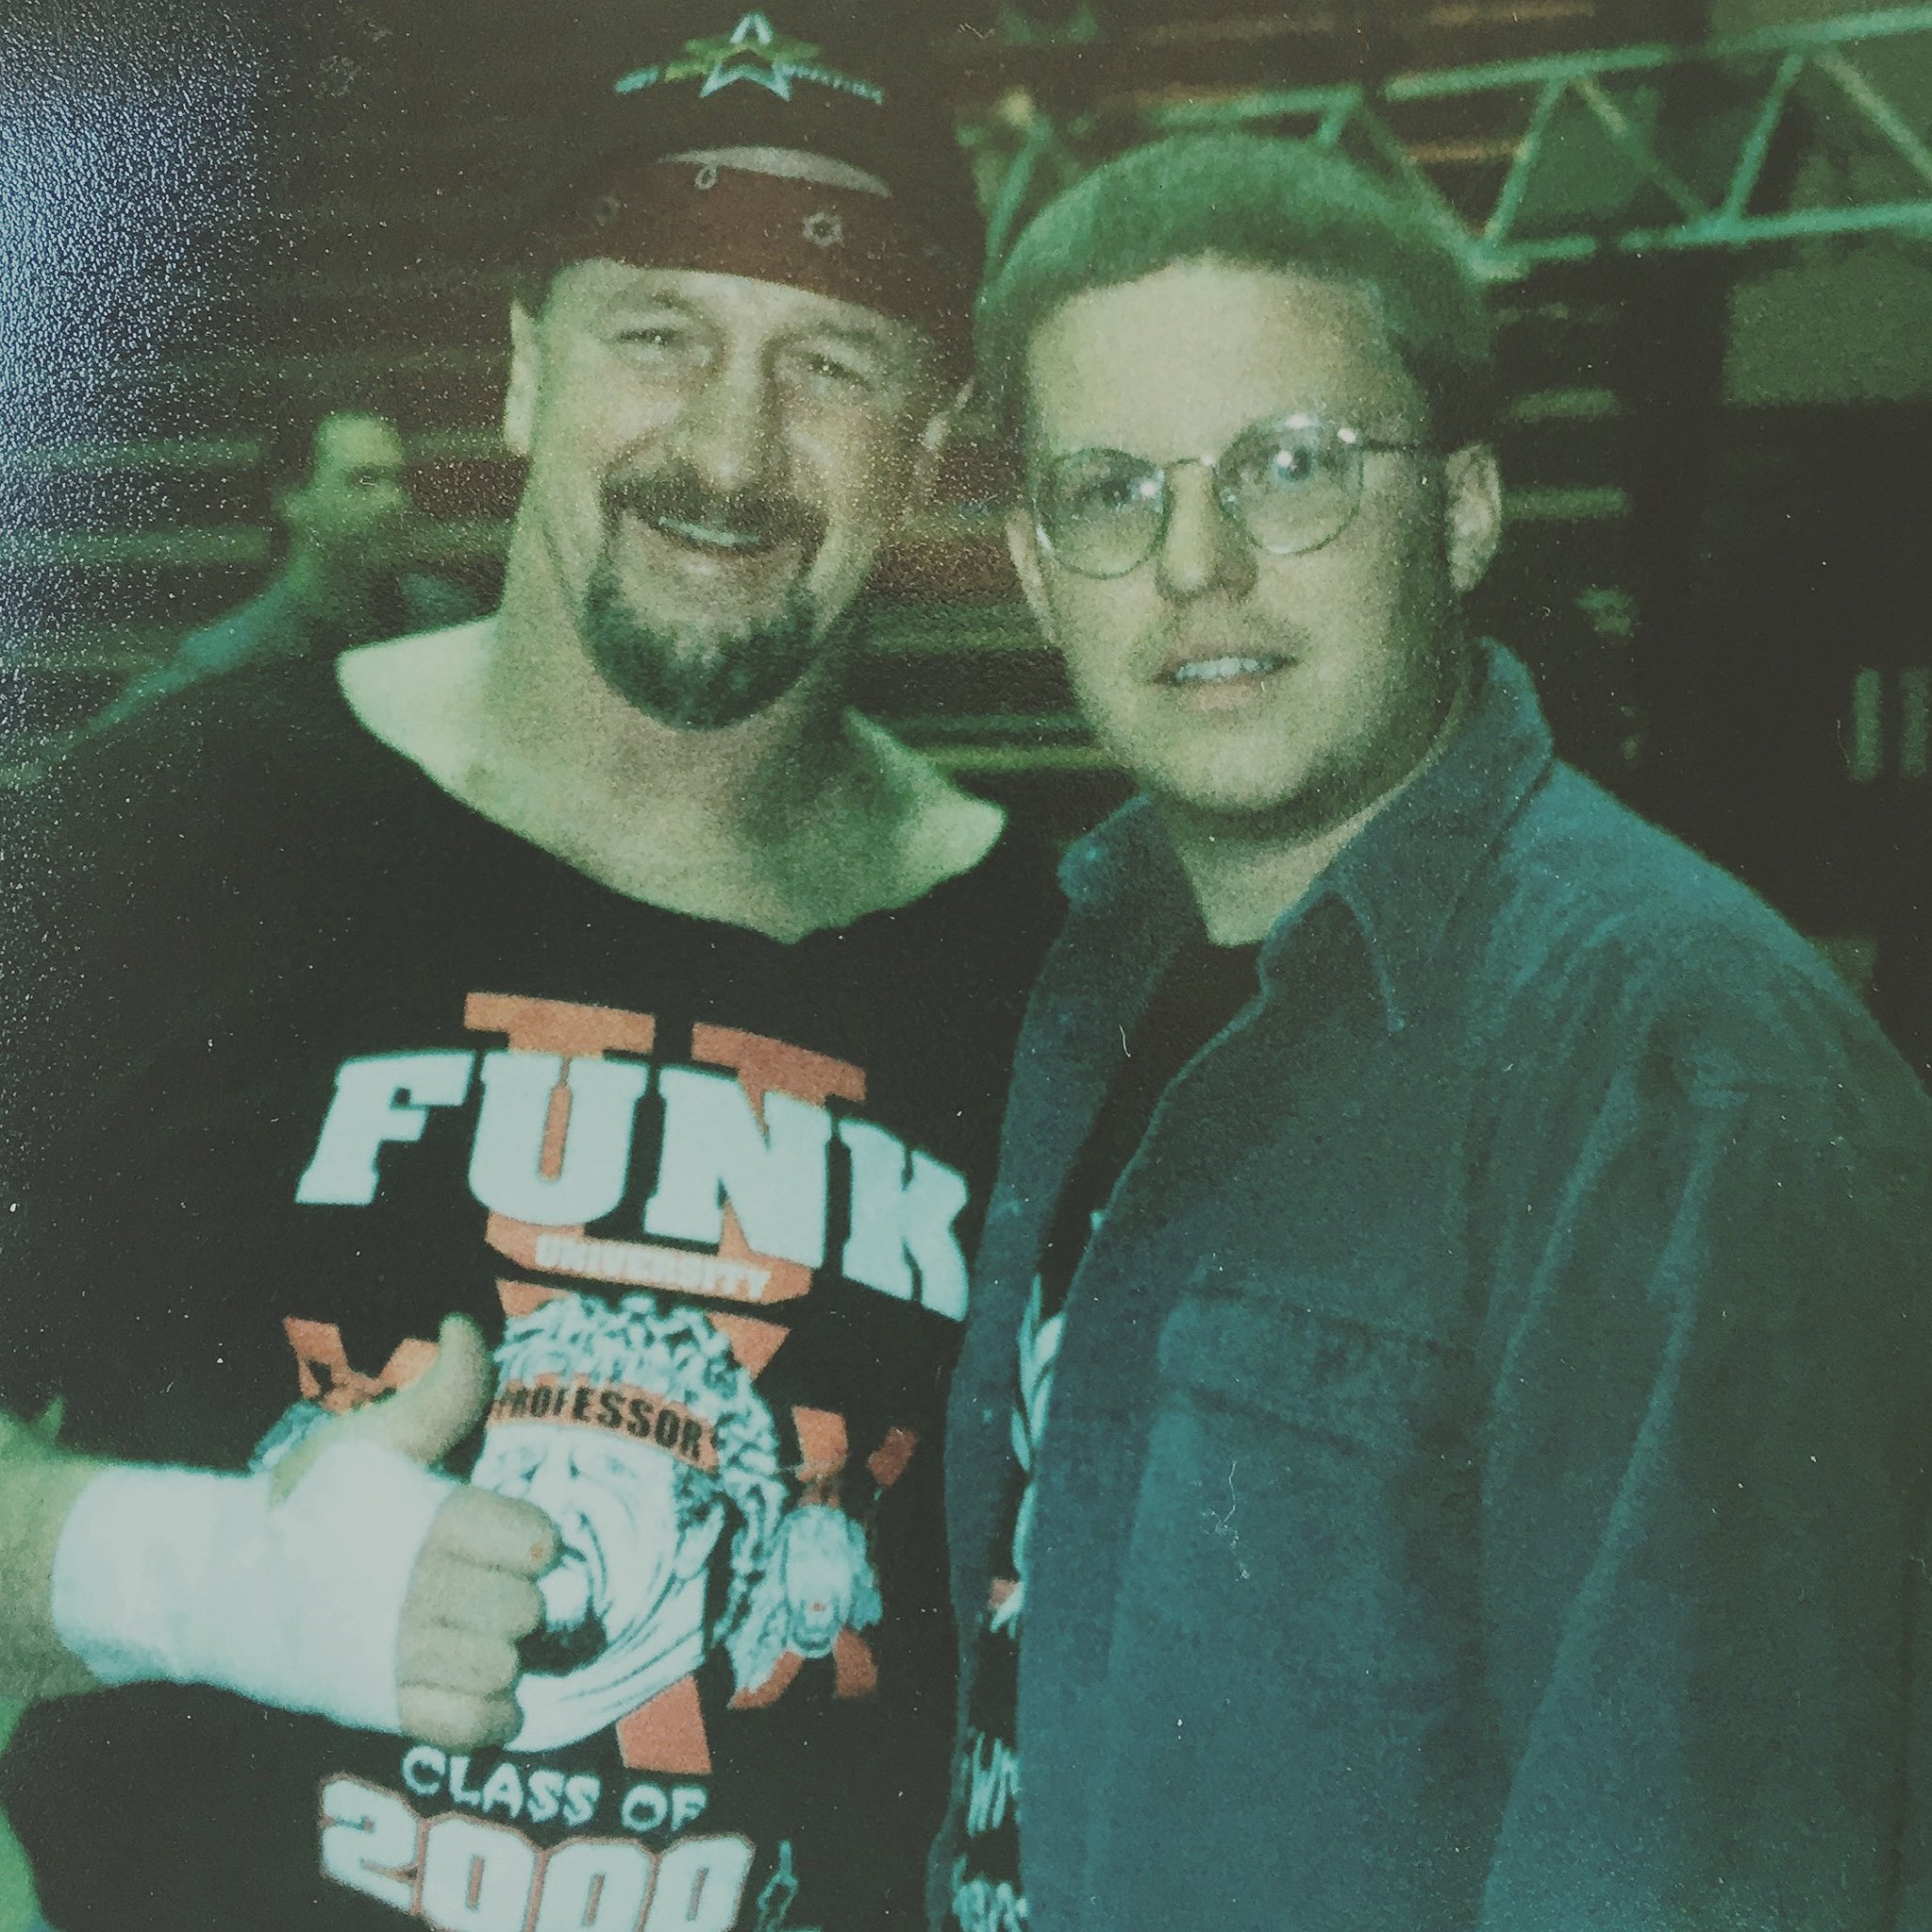 Happy 76th birthday to Terry Funk